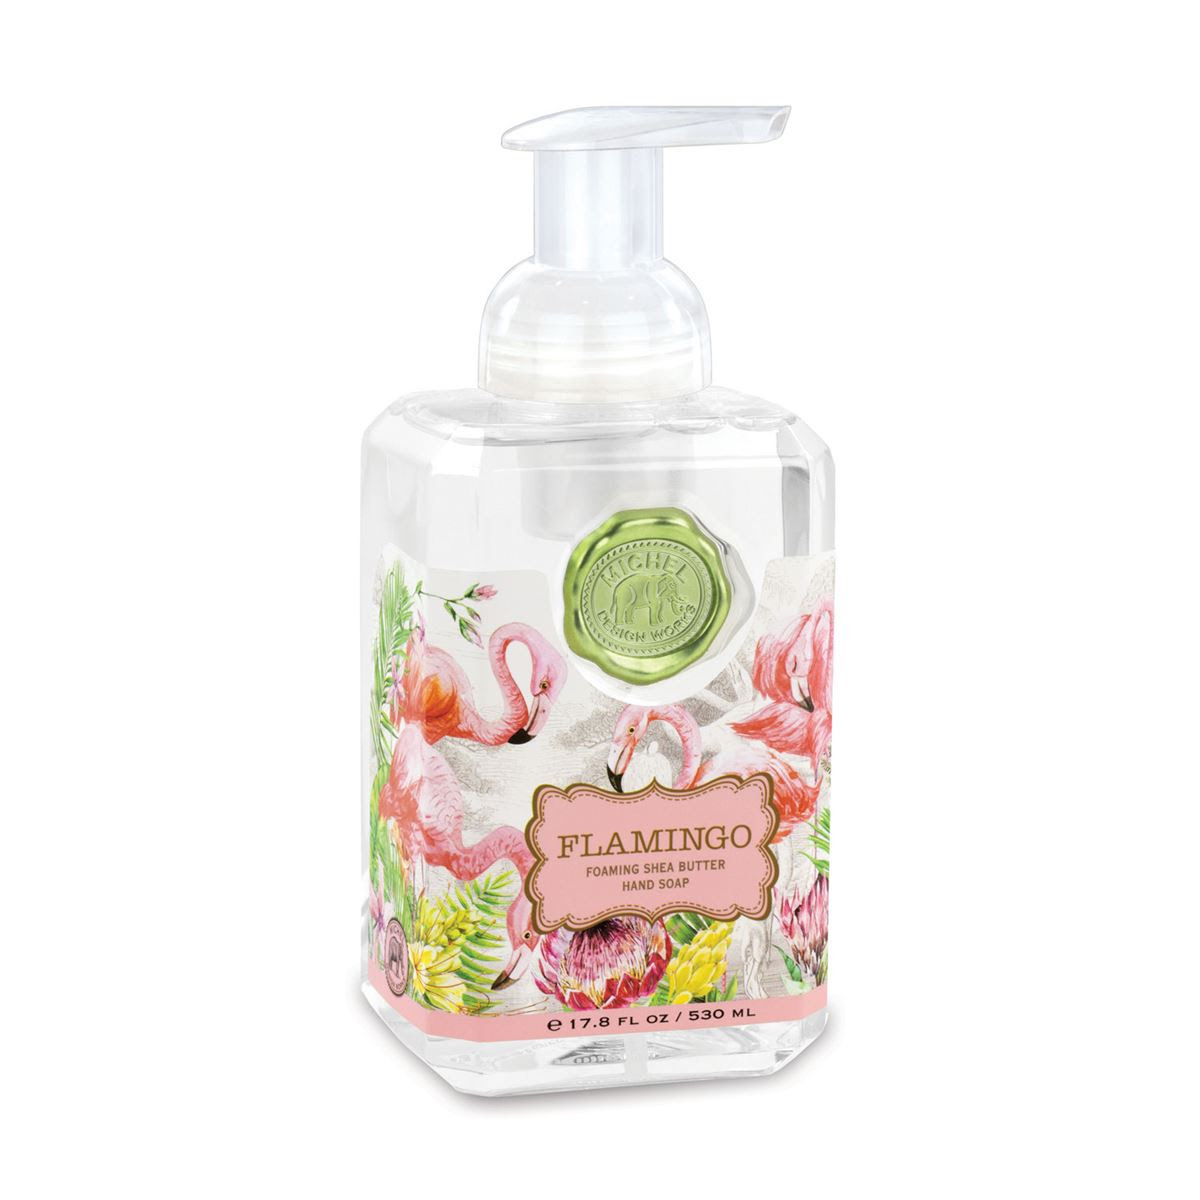 Foaming Hand Soap By Michel Design Works Flamingo